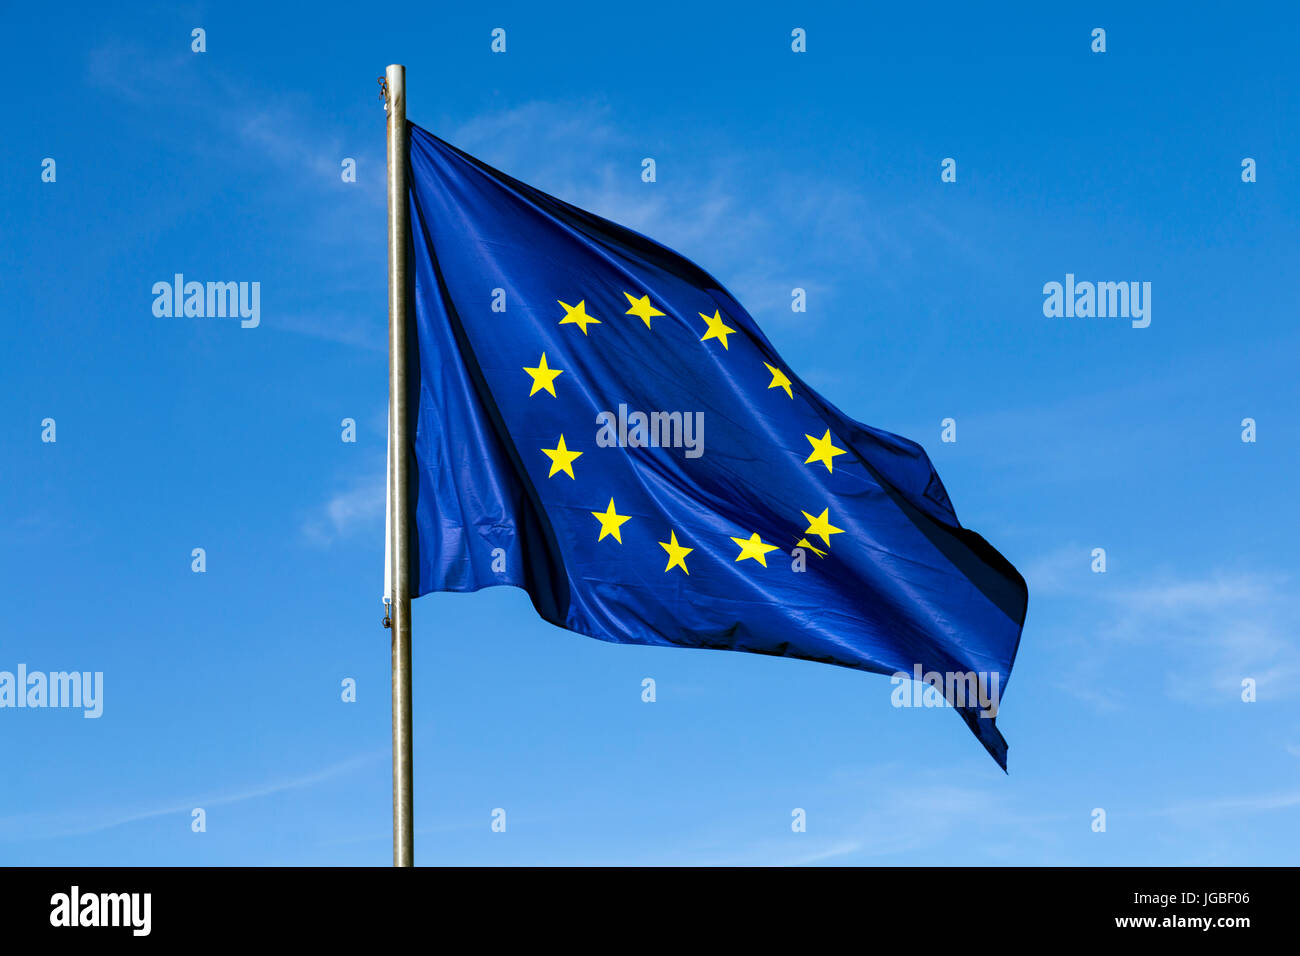 European Union flag against a blue sky background - Stock Image